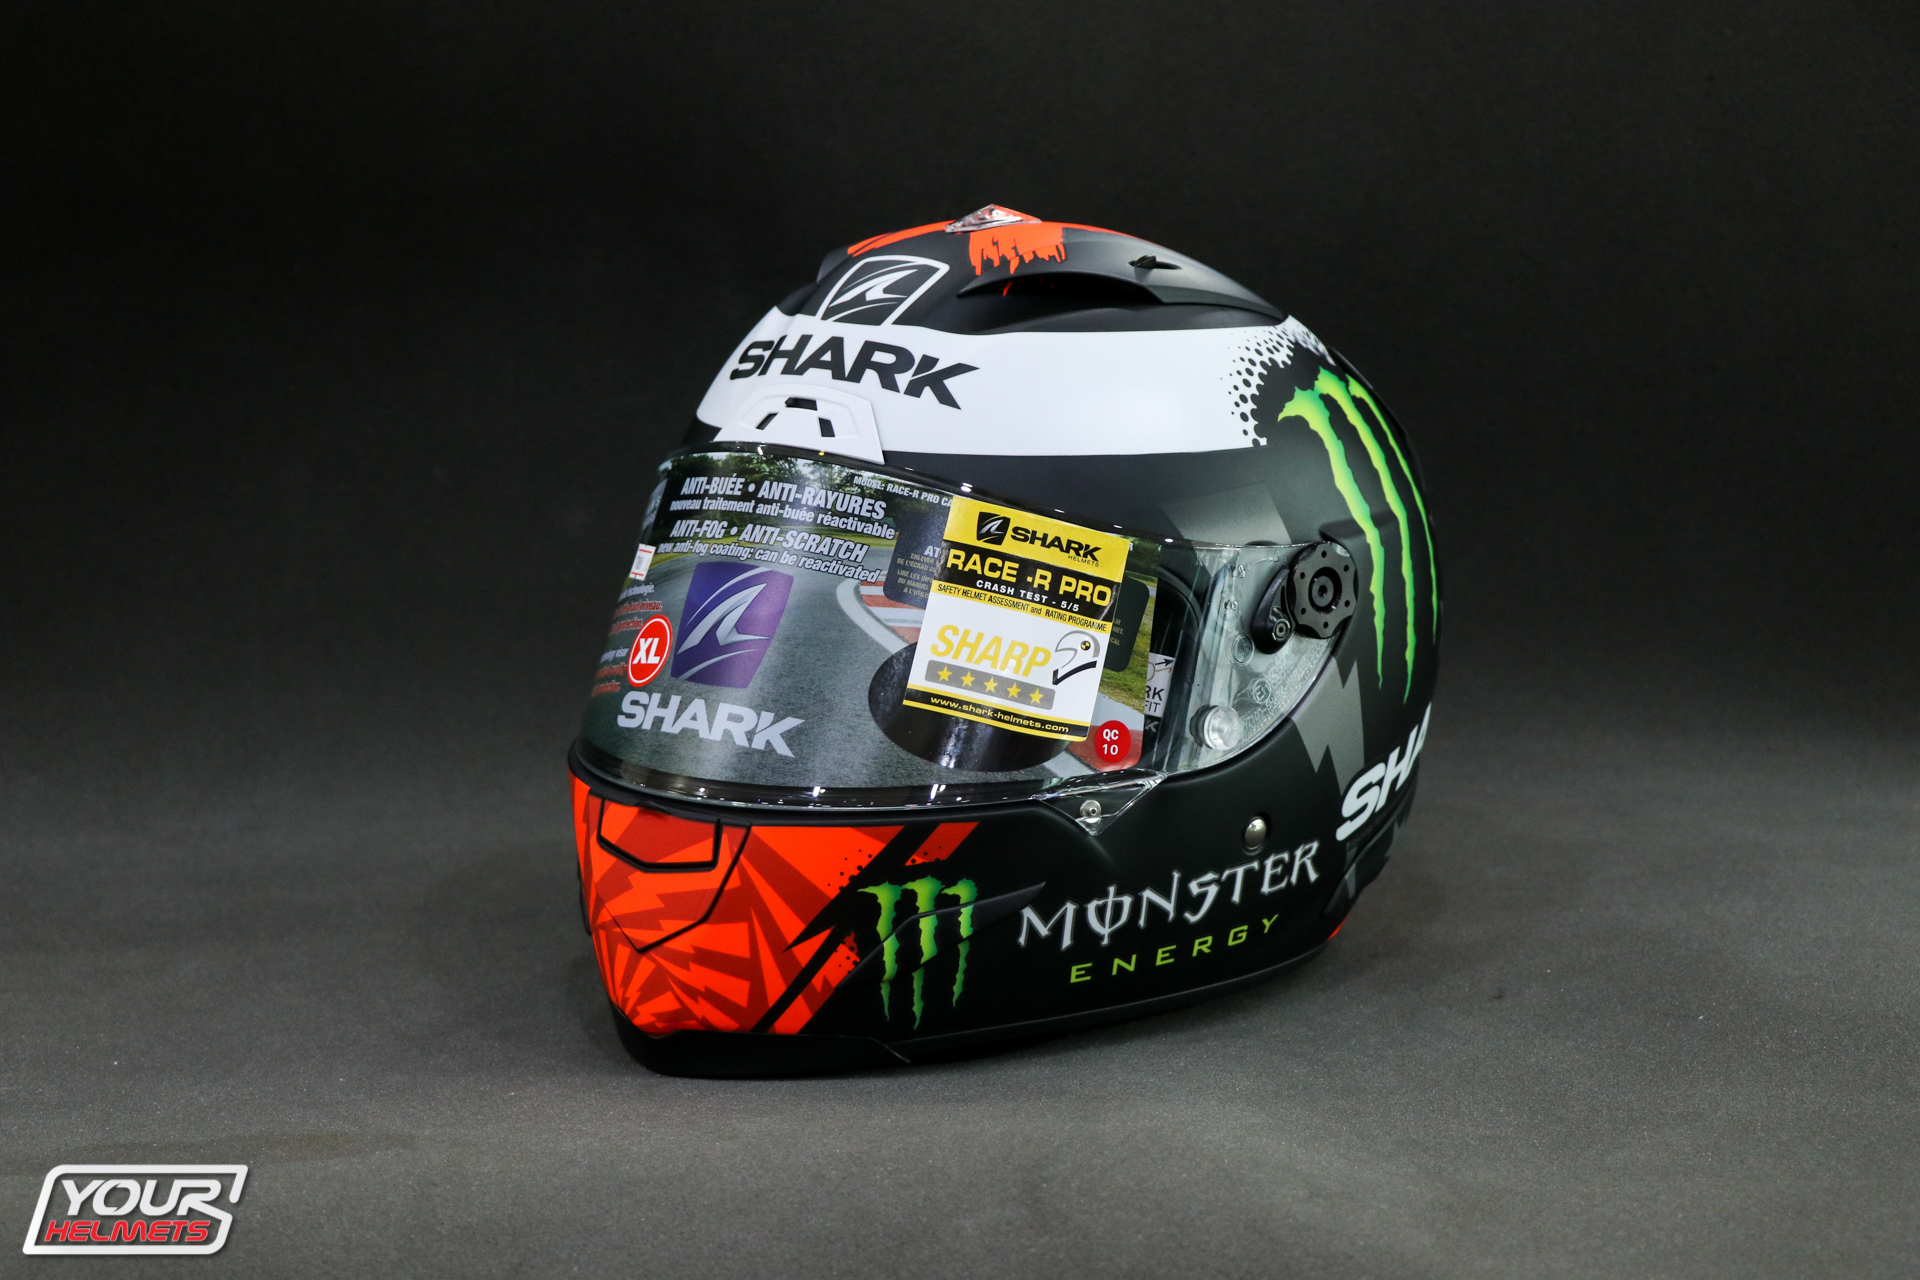 SHARK RACE-R PRO REPLICA LORENZO MONSTER MAT 2017 - KRW